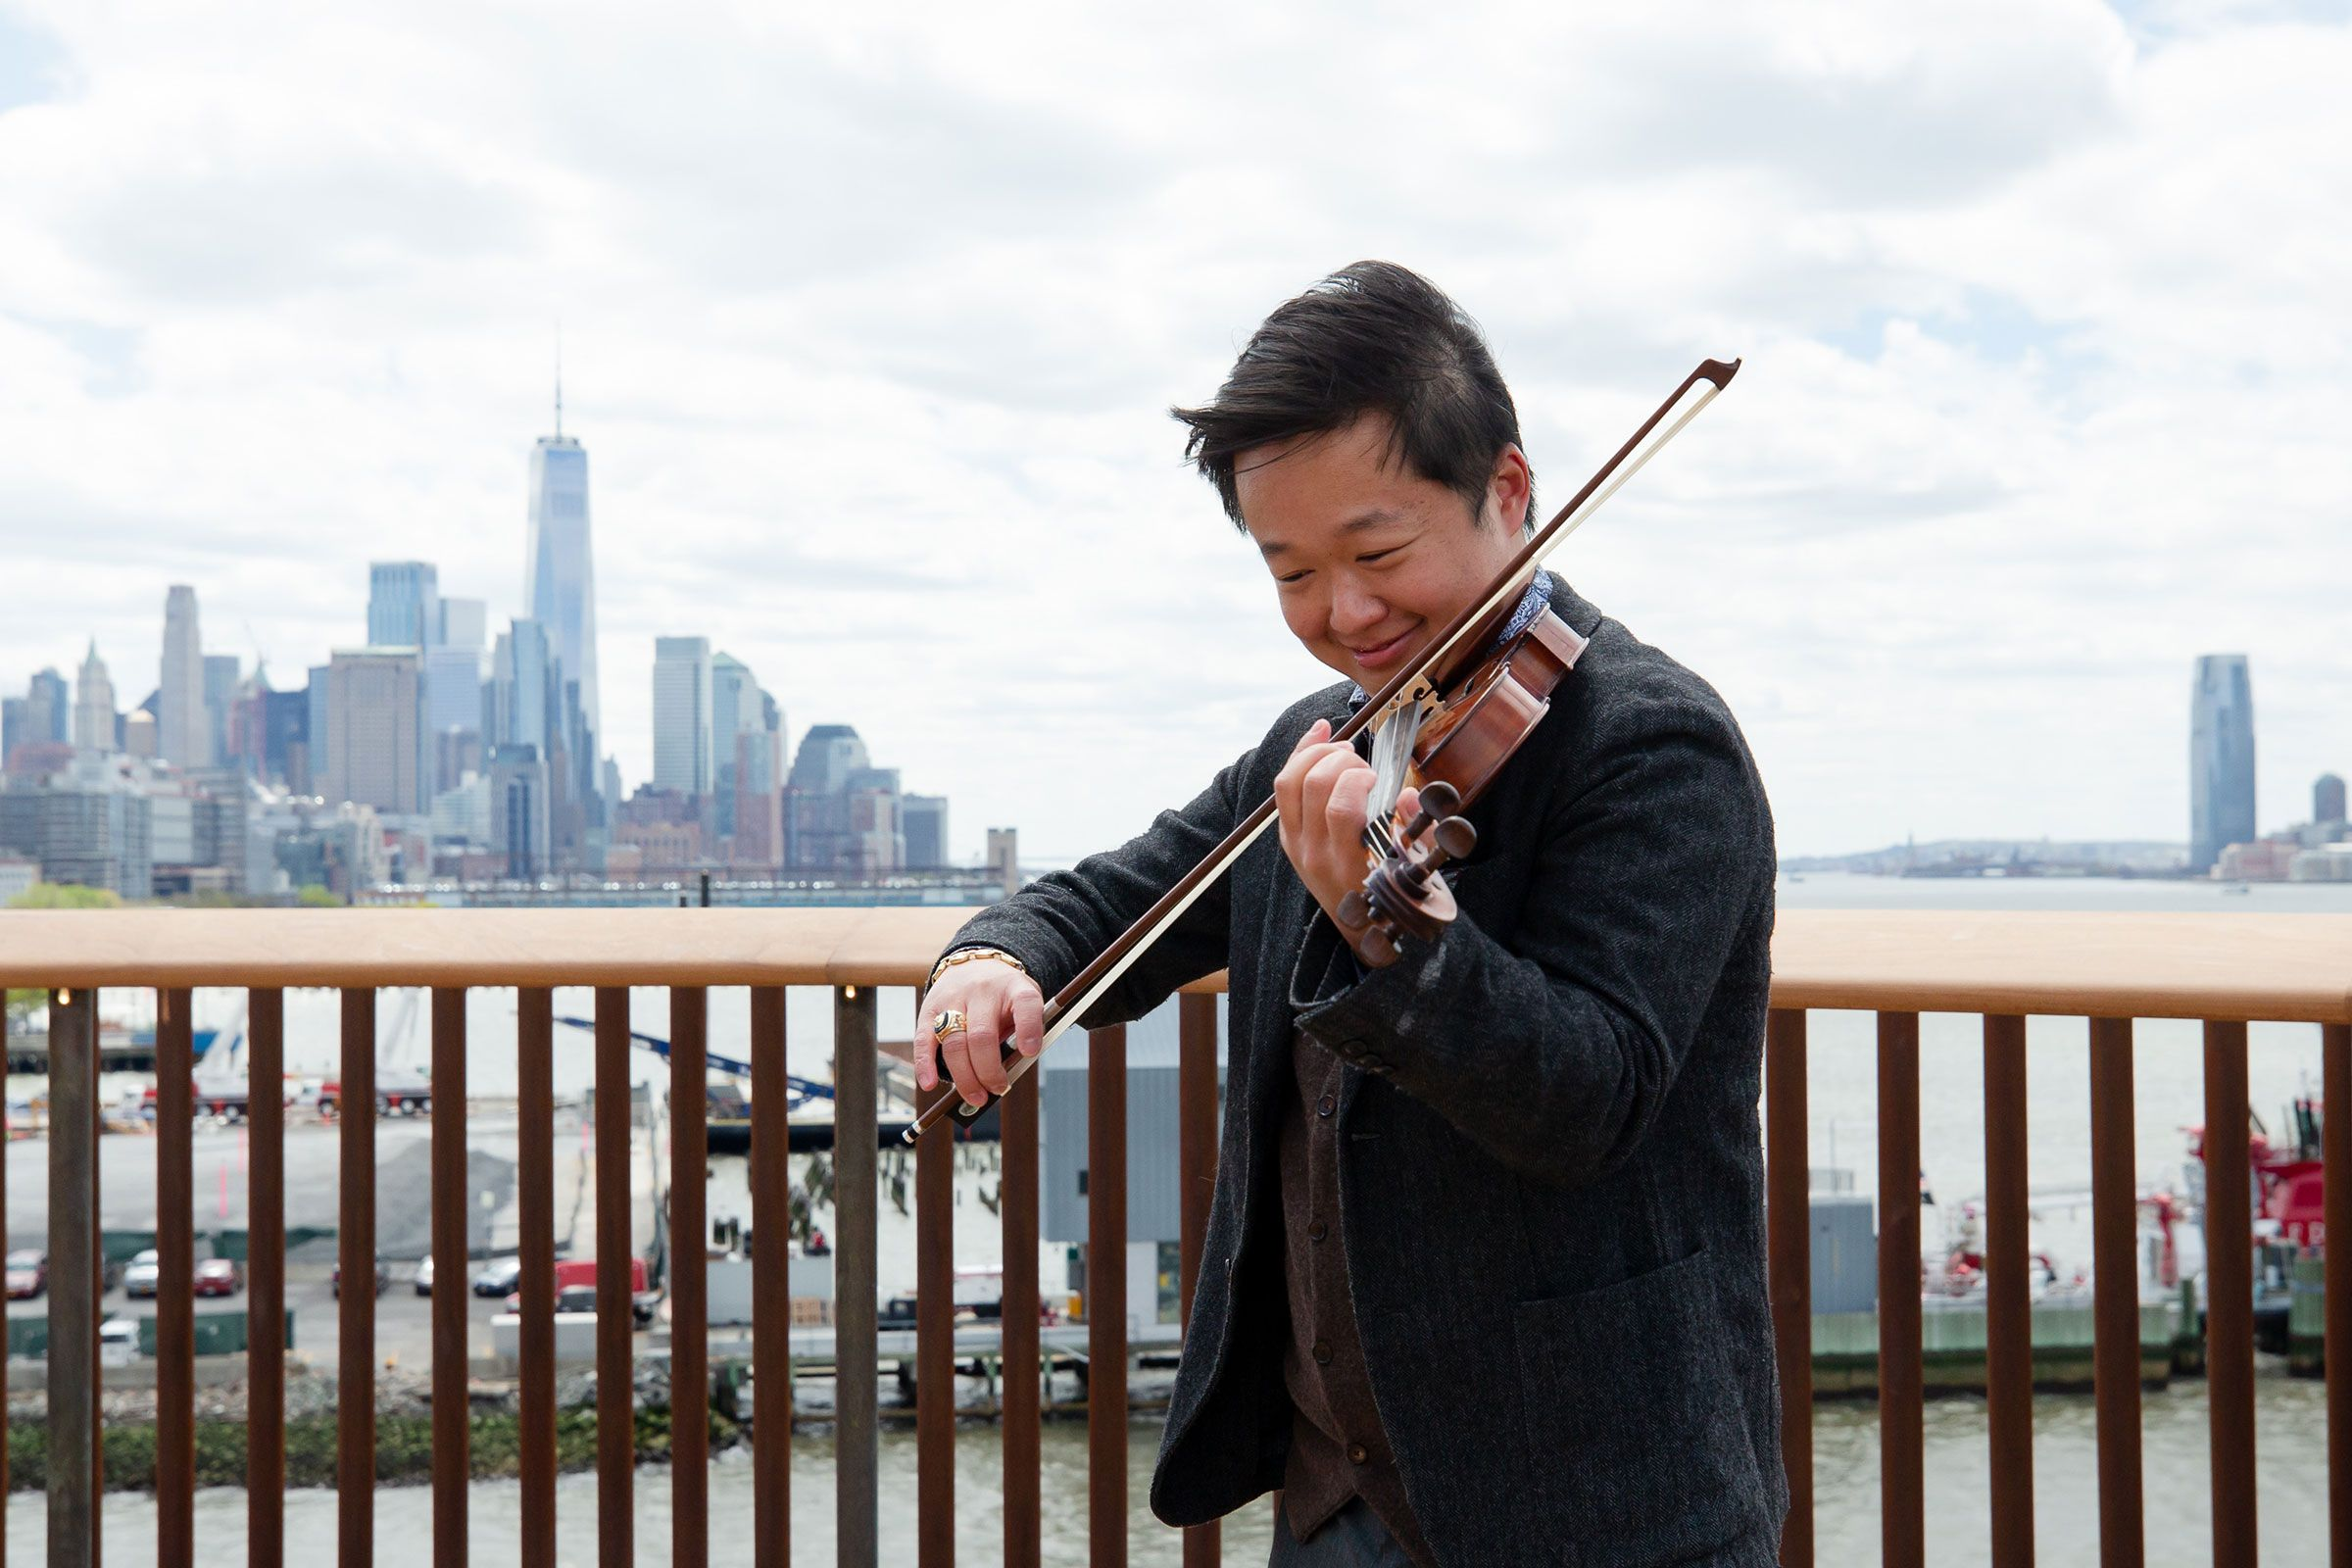 Man playing the violin with the city skyline in the background